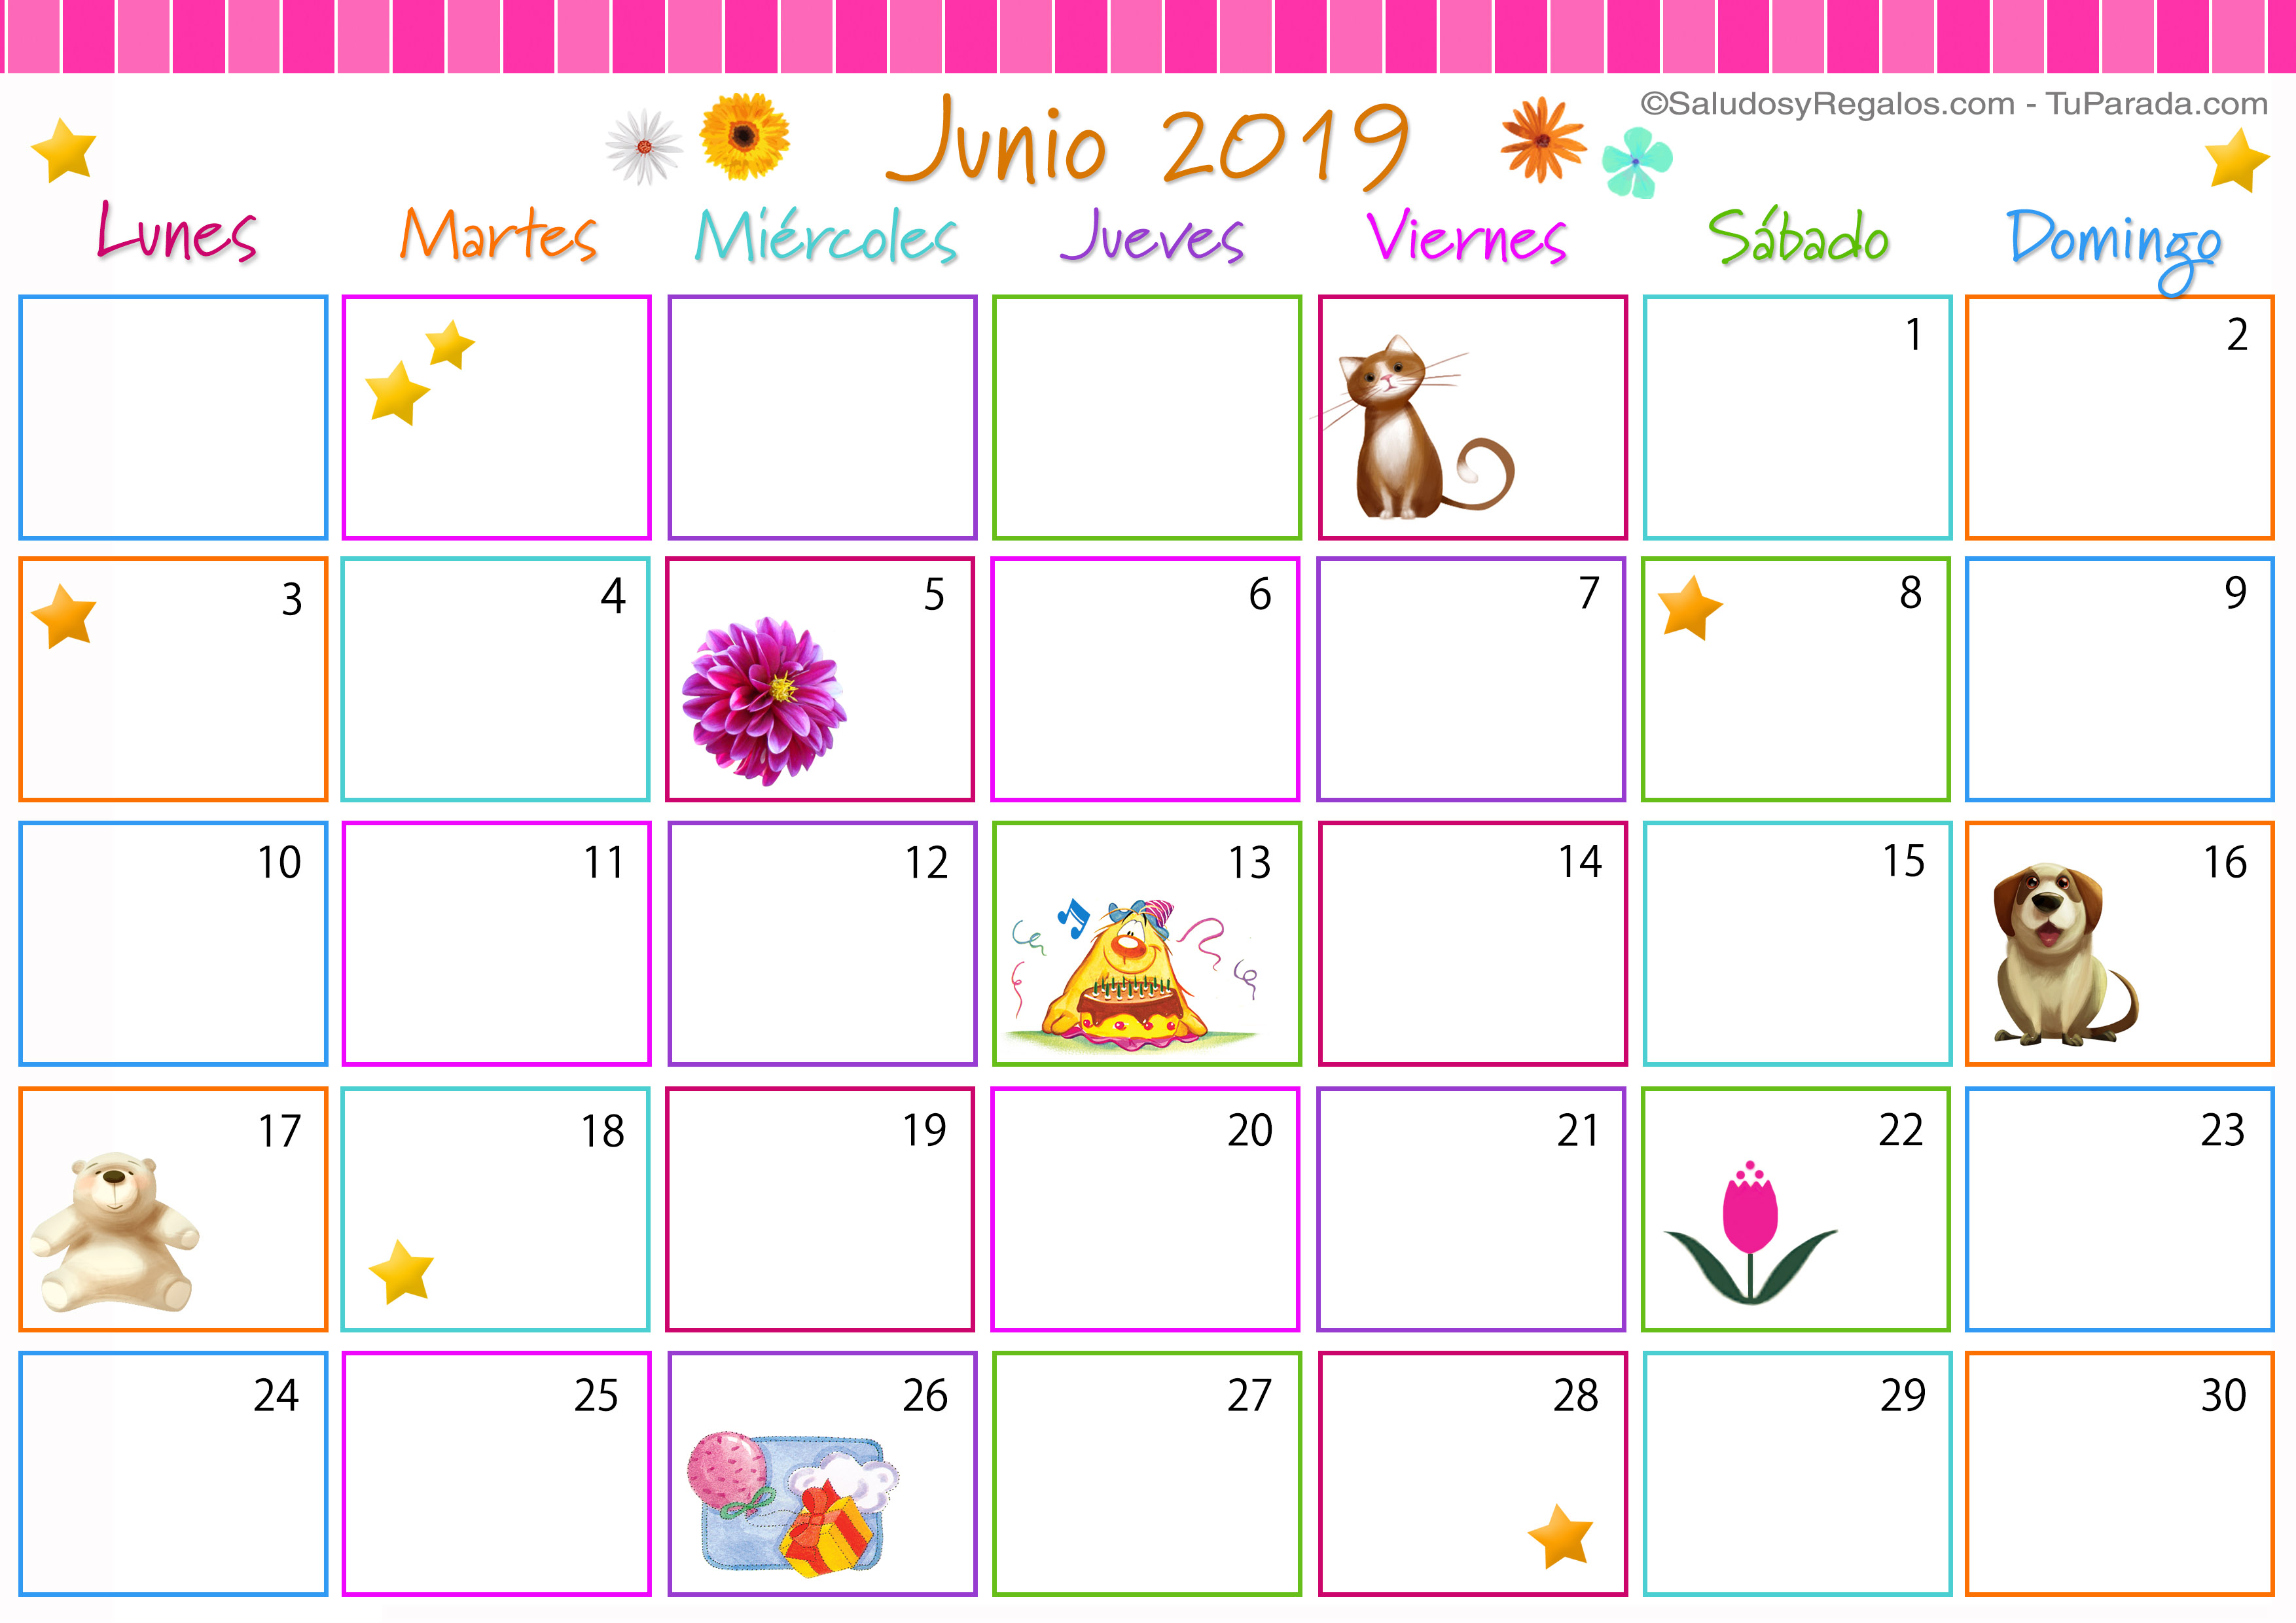 Calendario De Junio.Calendario Multicolor Junio 2019 Calendario Multicolor 2019